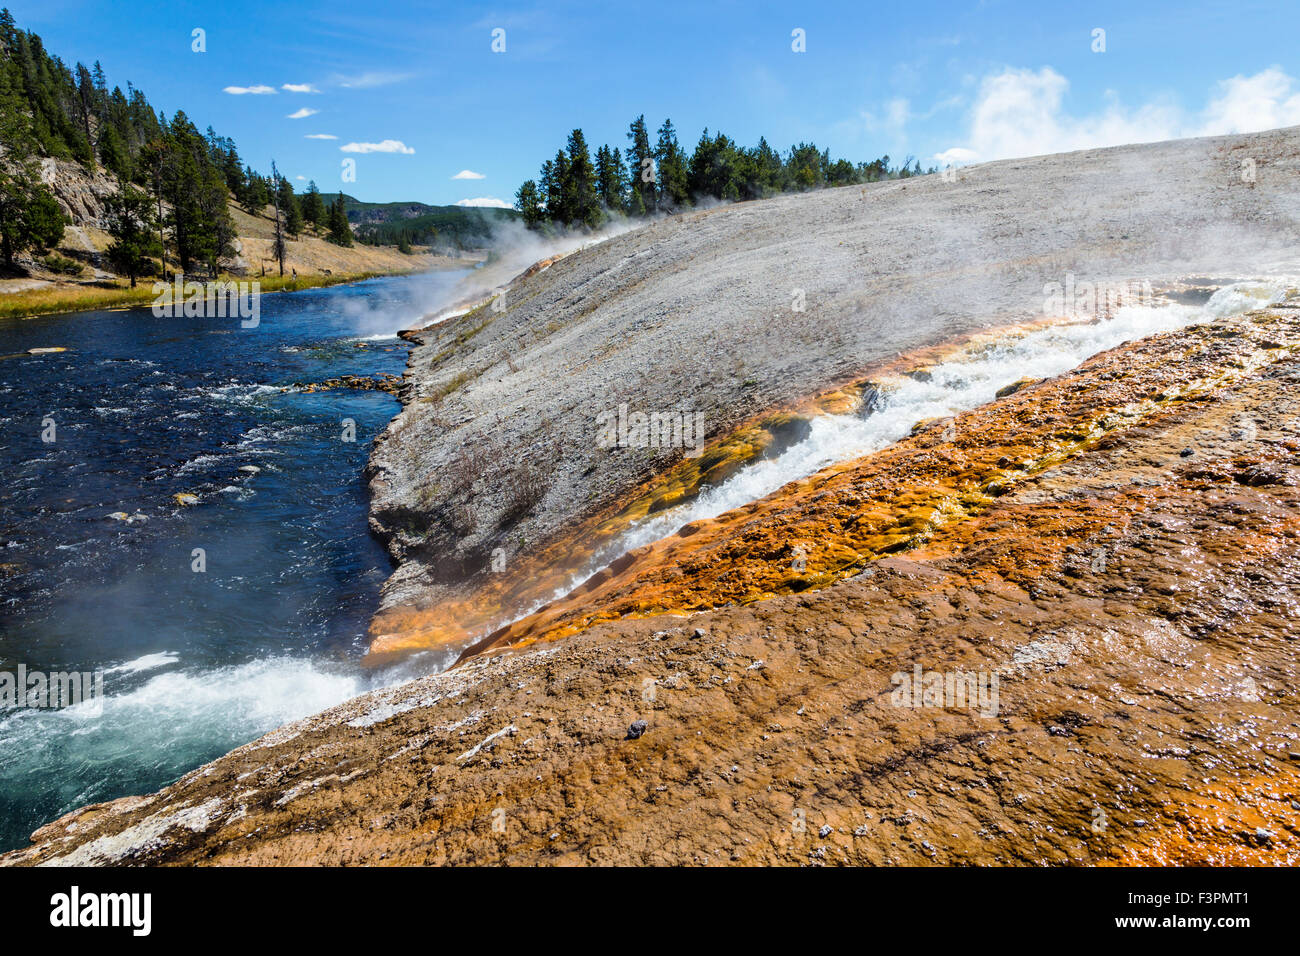 Midway Geyser Basin; hot springs flow to Firehole River; Yellowstone National Park, Wyoming, USA - Stock Image